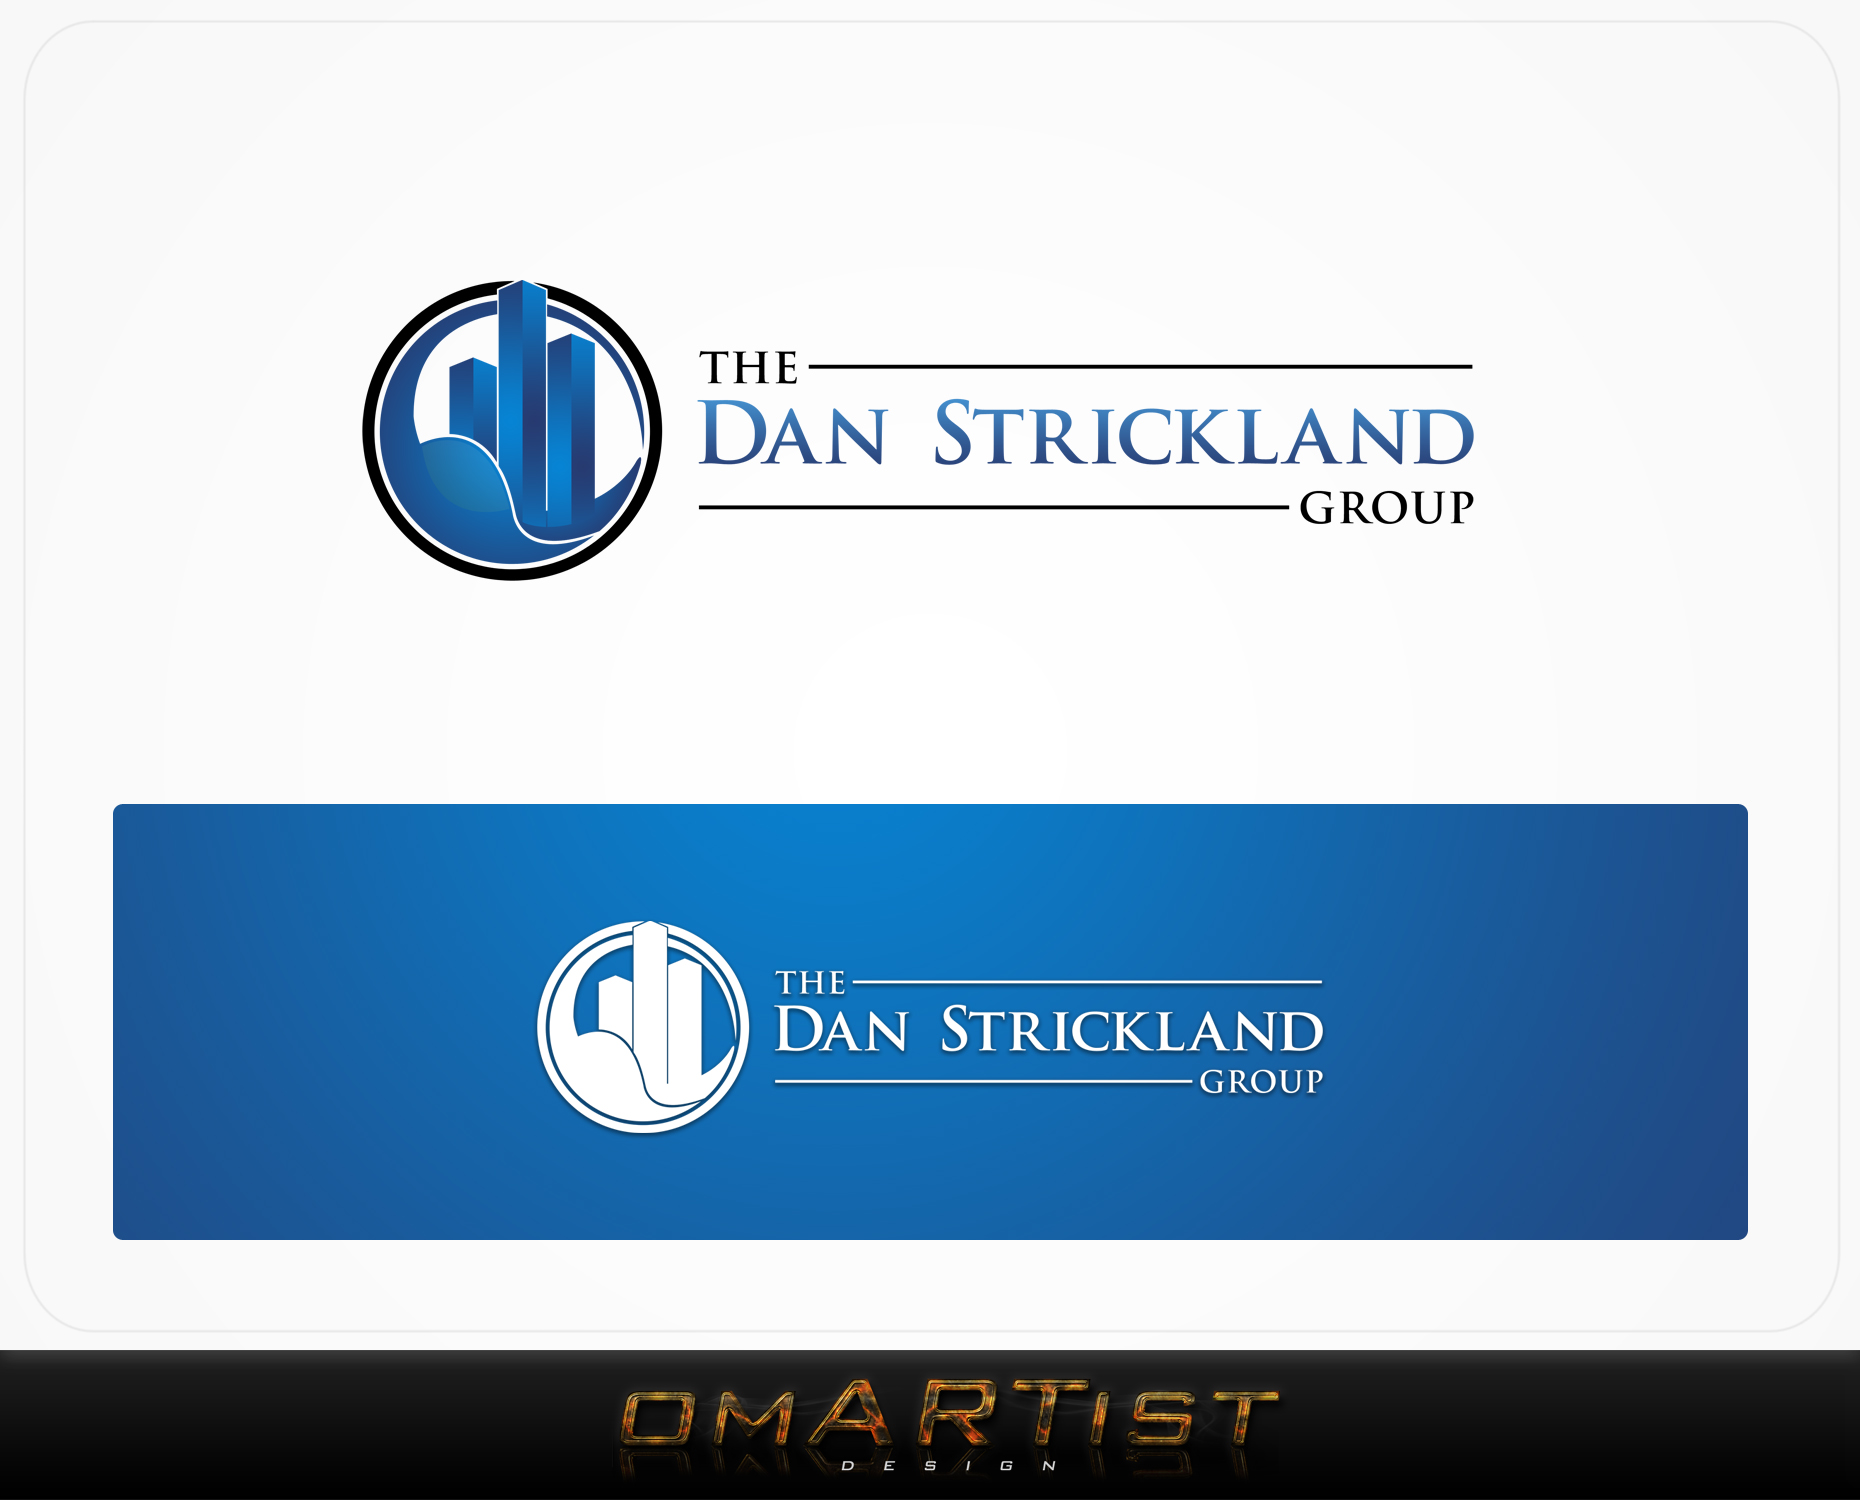 Logo Design by omARTist - Entry No. 330 in the Logo Design Contest Creative Logo Design for The Dan Strickland Group.